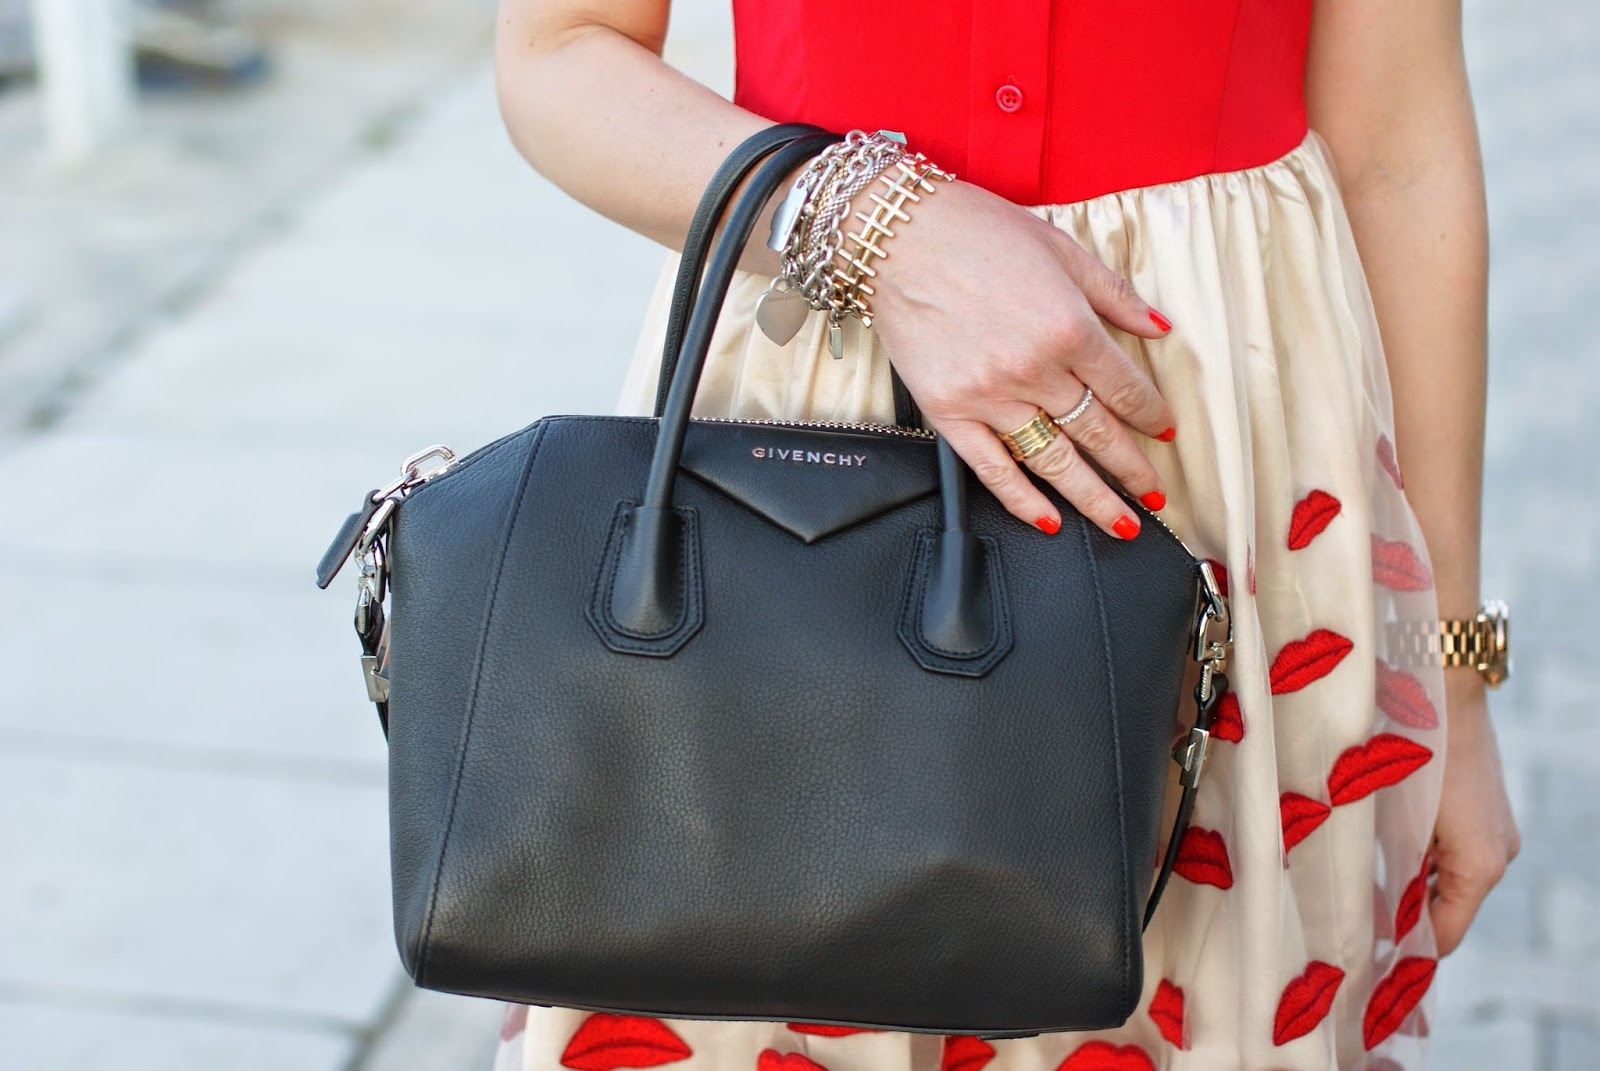 Givenchy Antigona black bag, Captain Dior nail polish, bvlgari ring, Fashion and Cookies, fashion blogger